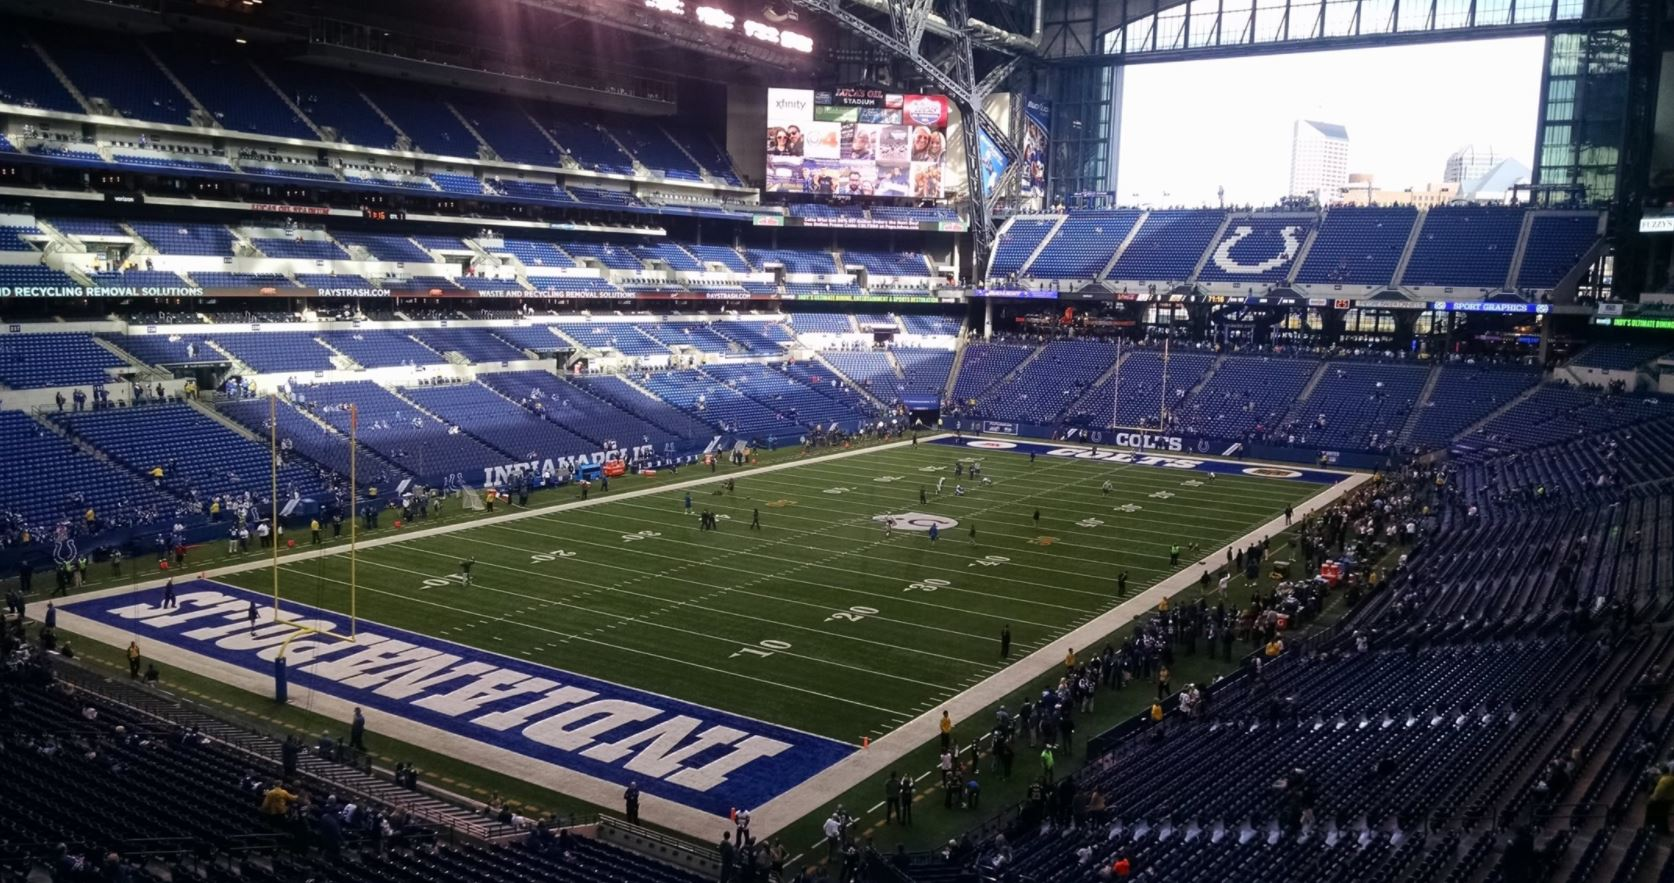 Best Seats For Great Views Of The Field At Lucas Oil Stadium